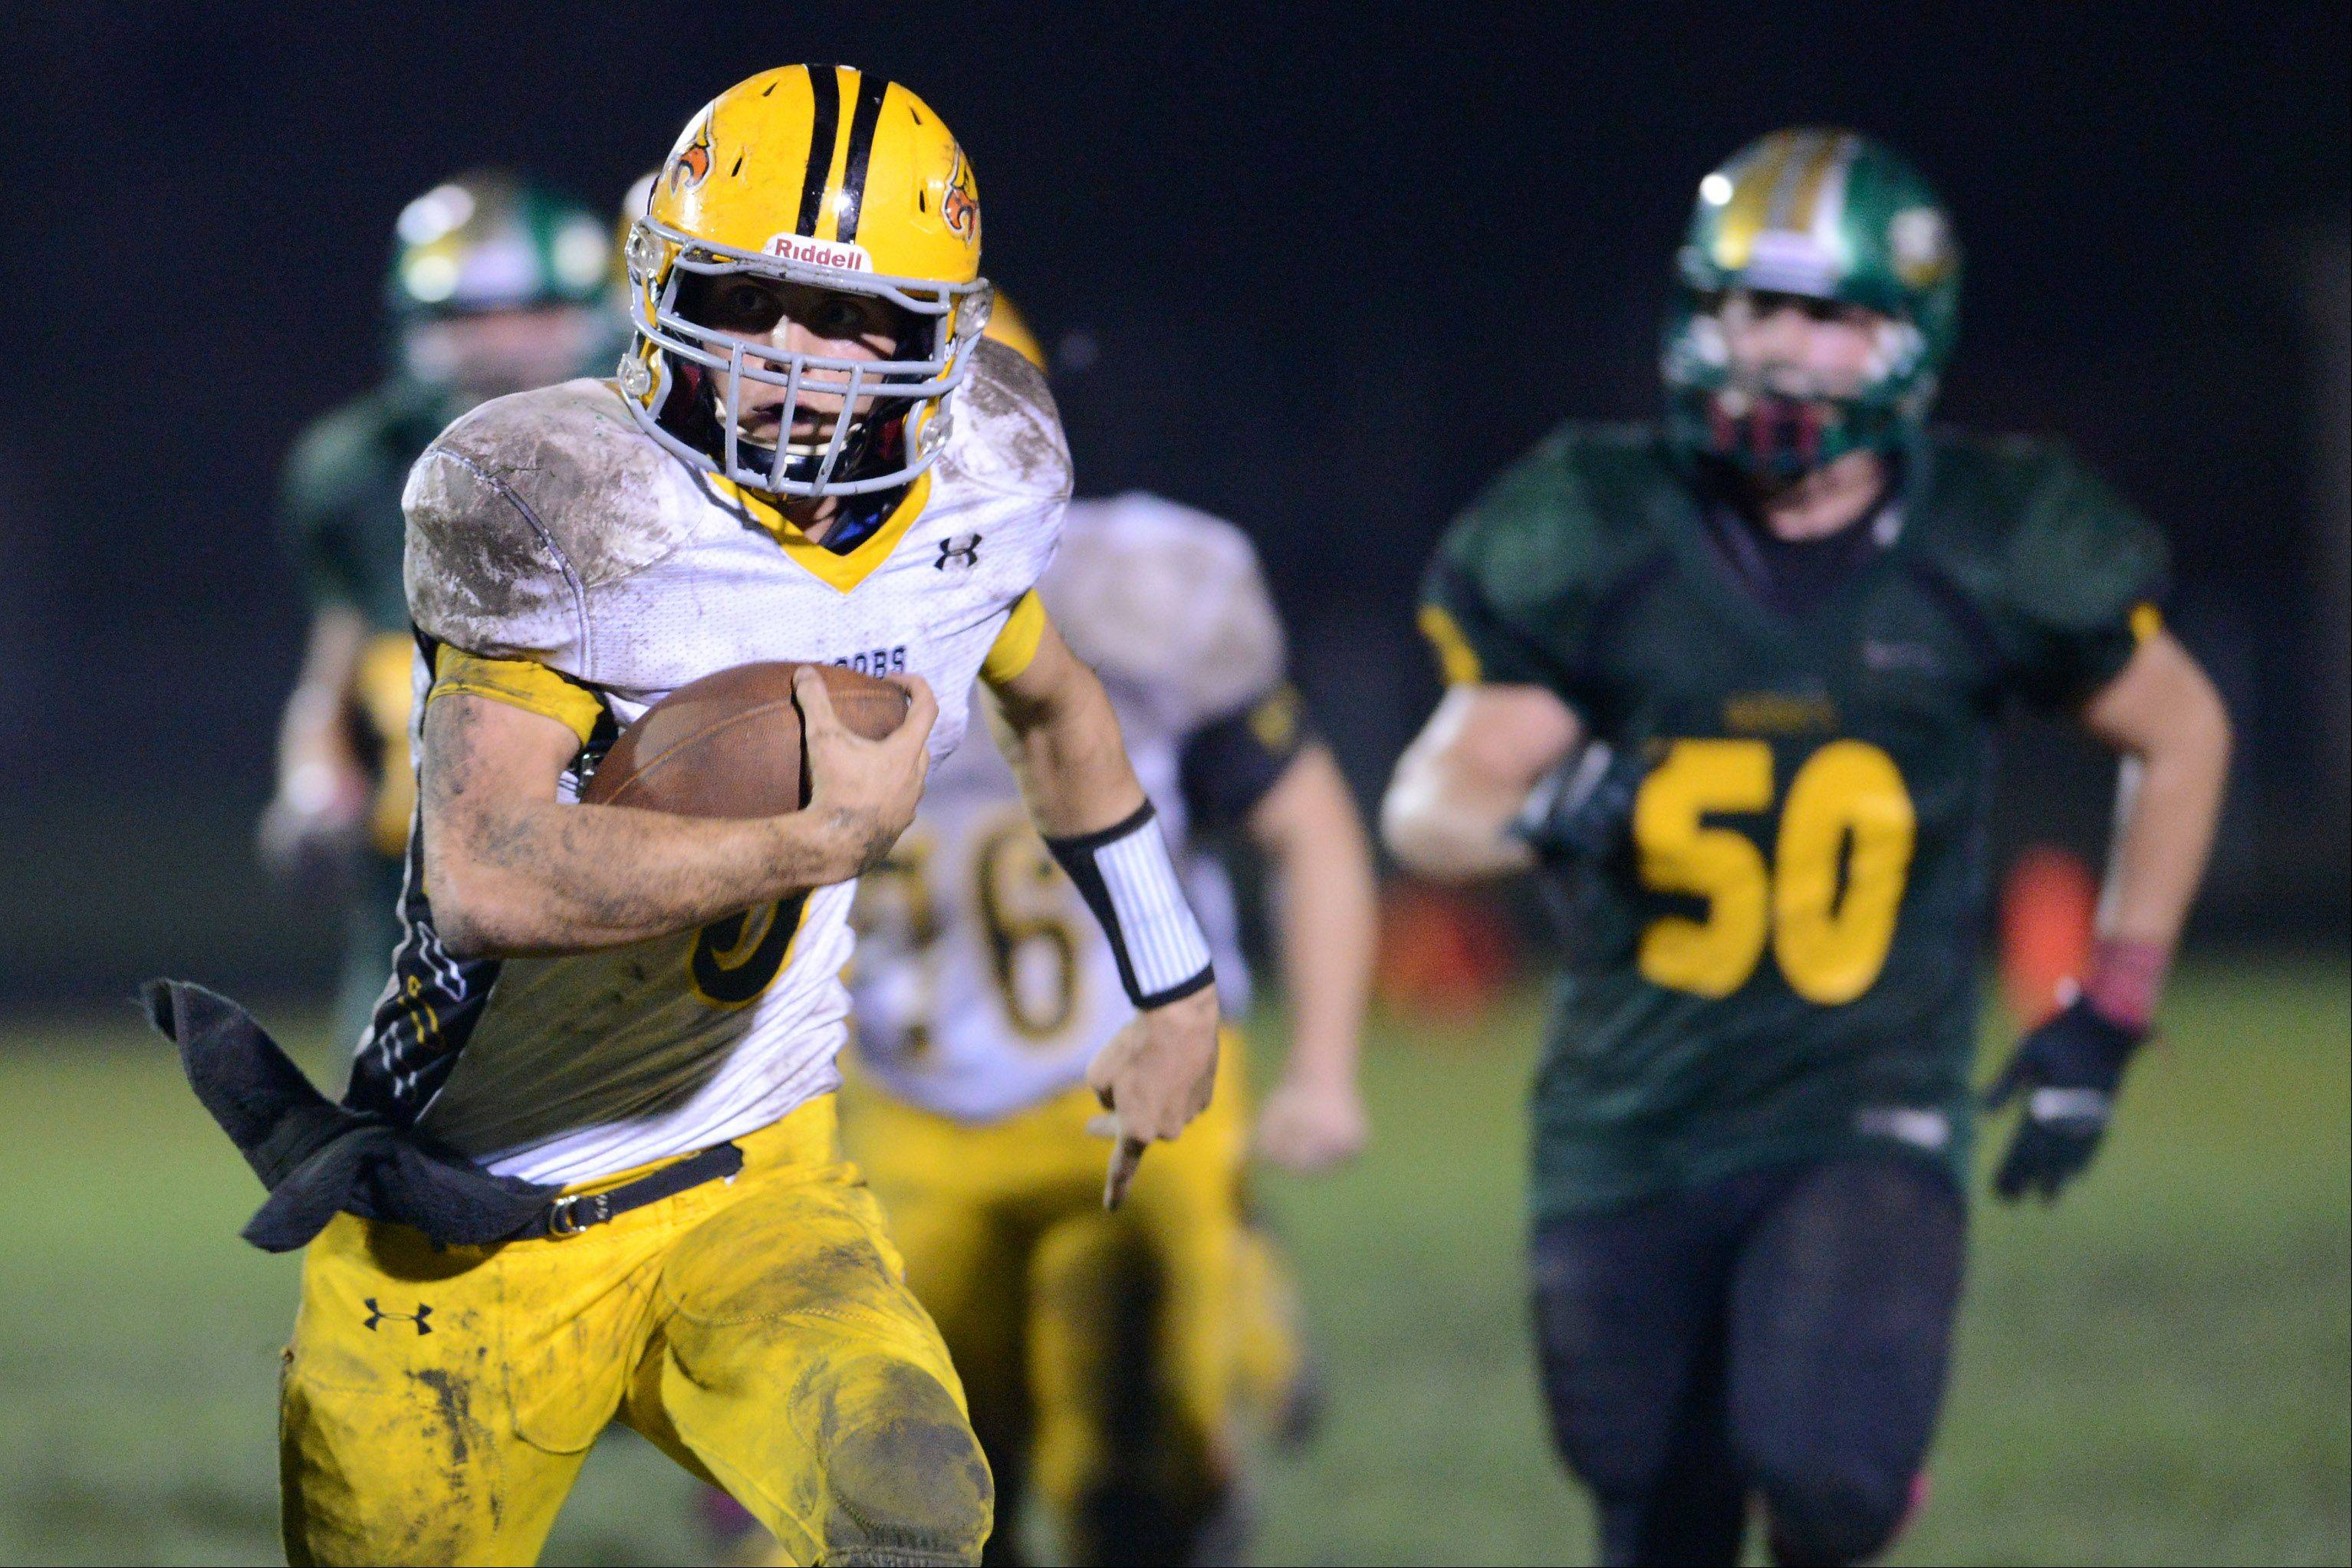 Images: Jacobs vs. Crystal Lake South football